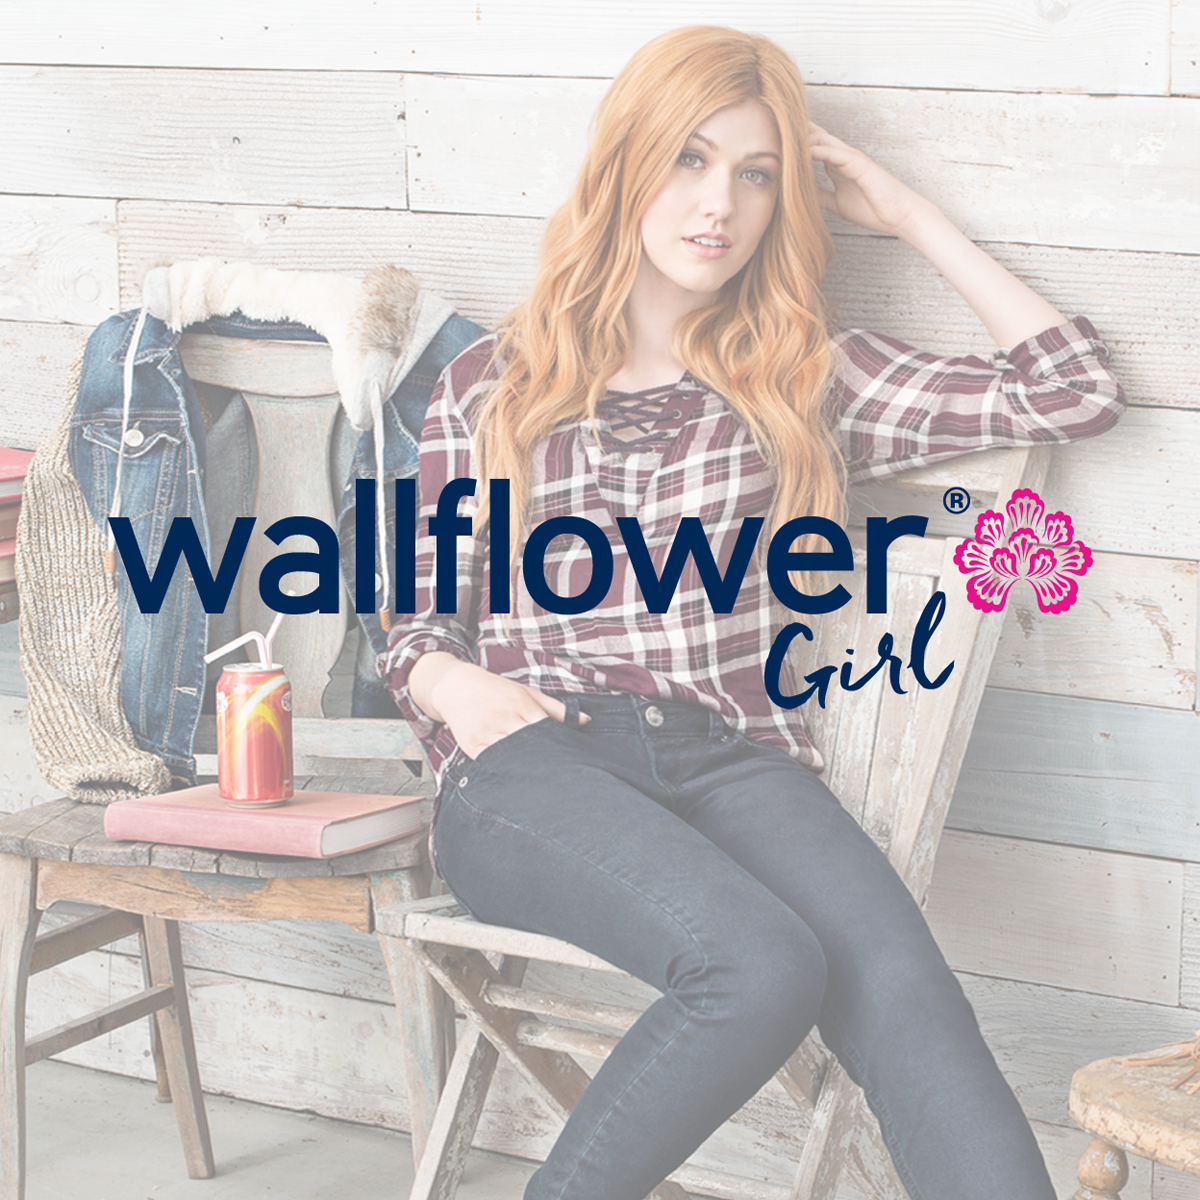 WALLFLOWER_SQUARESPACE_LOGO_FINAL.jpg